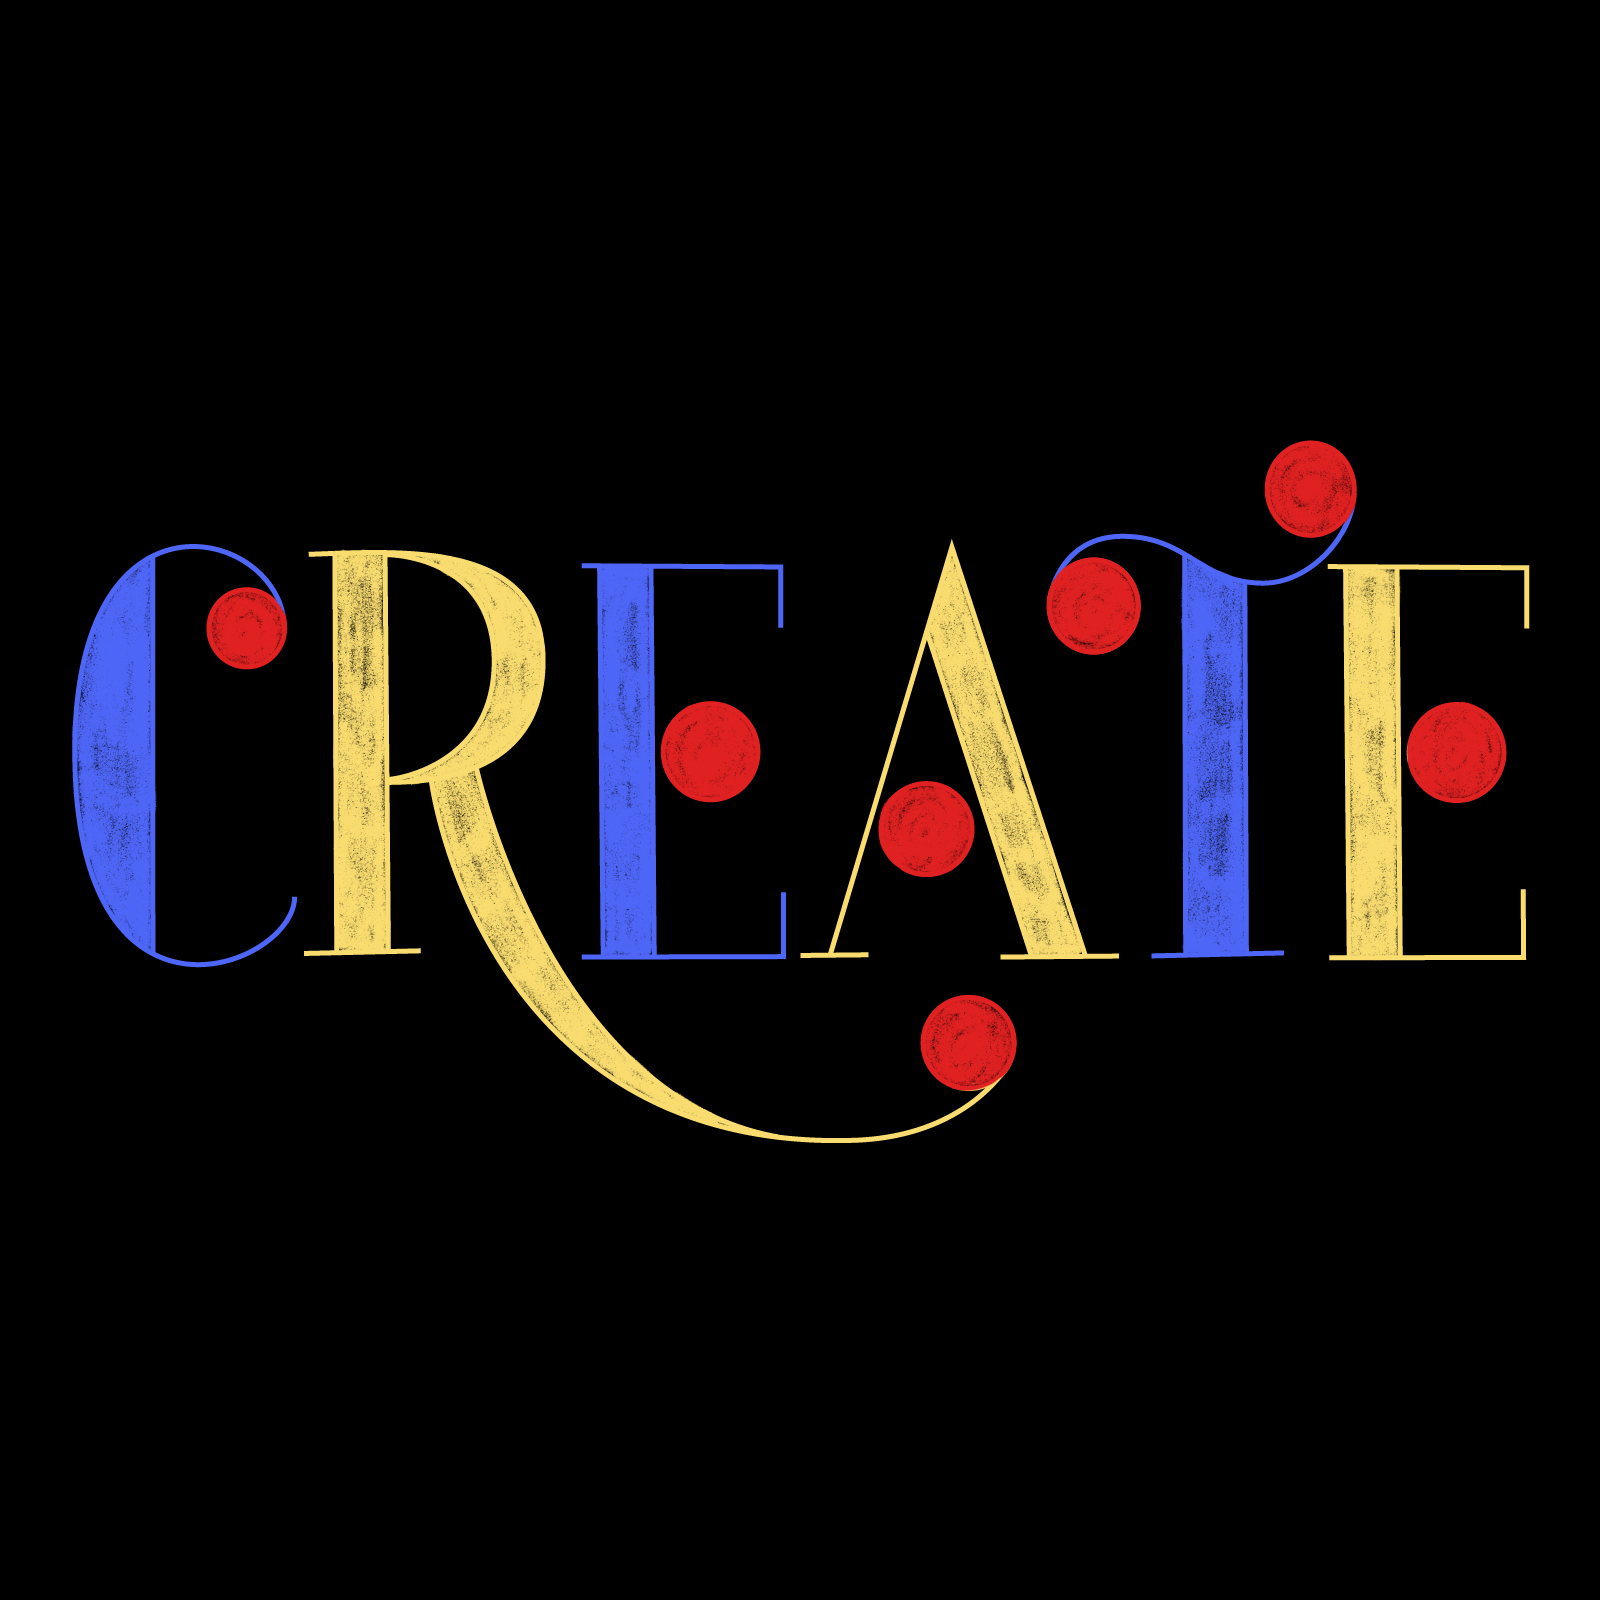 Create - Sound of Lettering